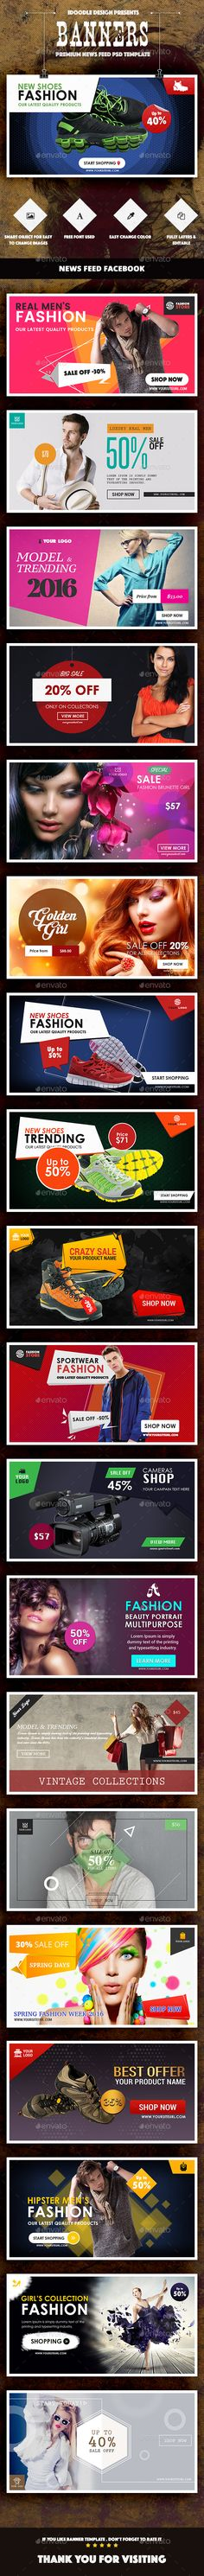 20 Facebook News Feed Product Banners Template - Download Here : http://graphicriver.net/item/news-feed-product-banners-ads-20-psd/14334263?ref=yinkira